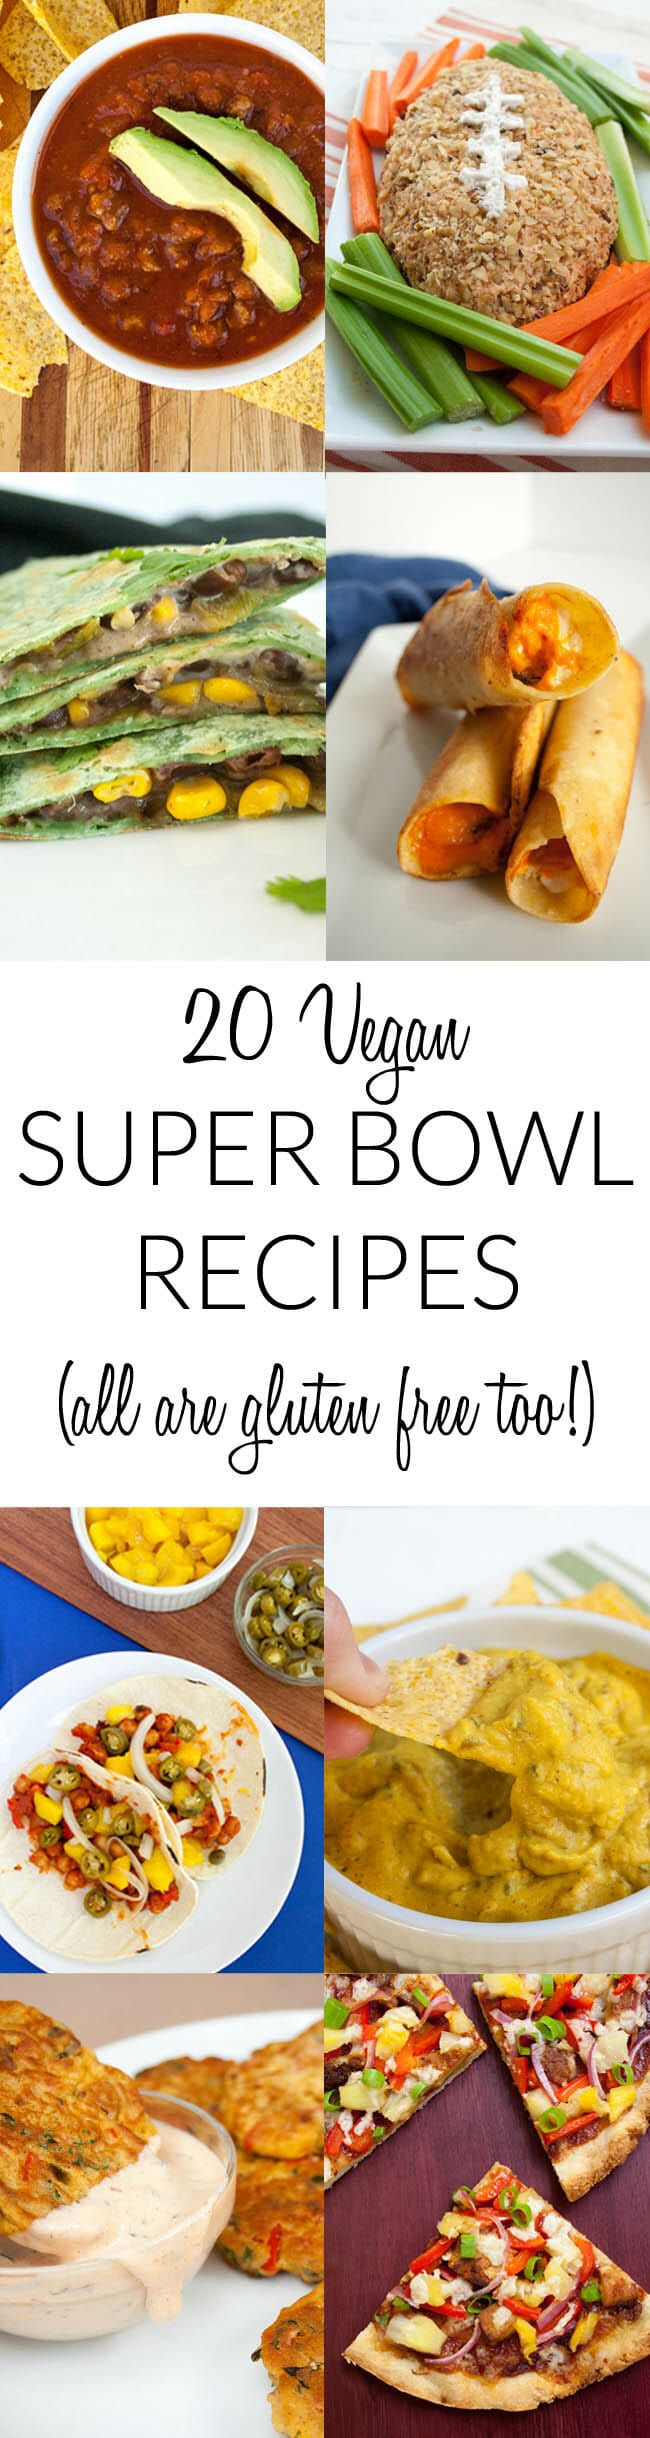 20 Vegan Super Bowl Recipes (gluten free too!) - Super Bowl Sunday is a culinary sport, so there should be a variety of options on the menu. These vegan game day finger foods include pizza, vegan nacho cheese, quesadillas, tacos and more. You are sure to find something for everyone with this resource!